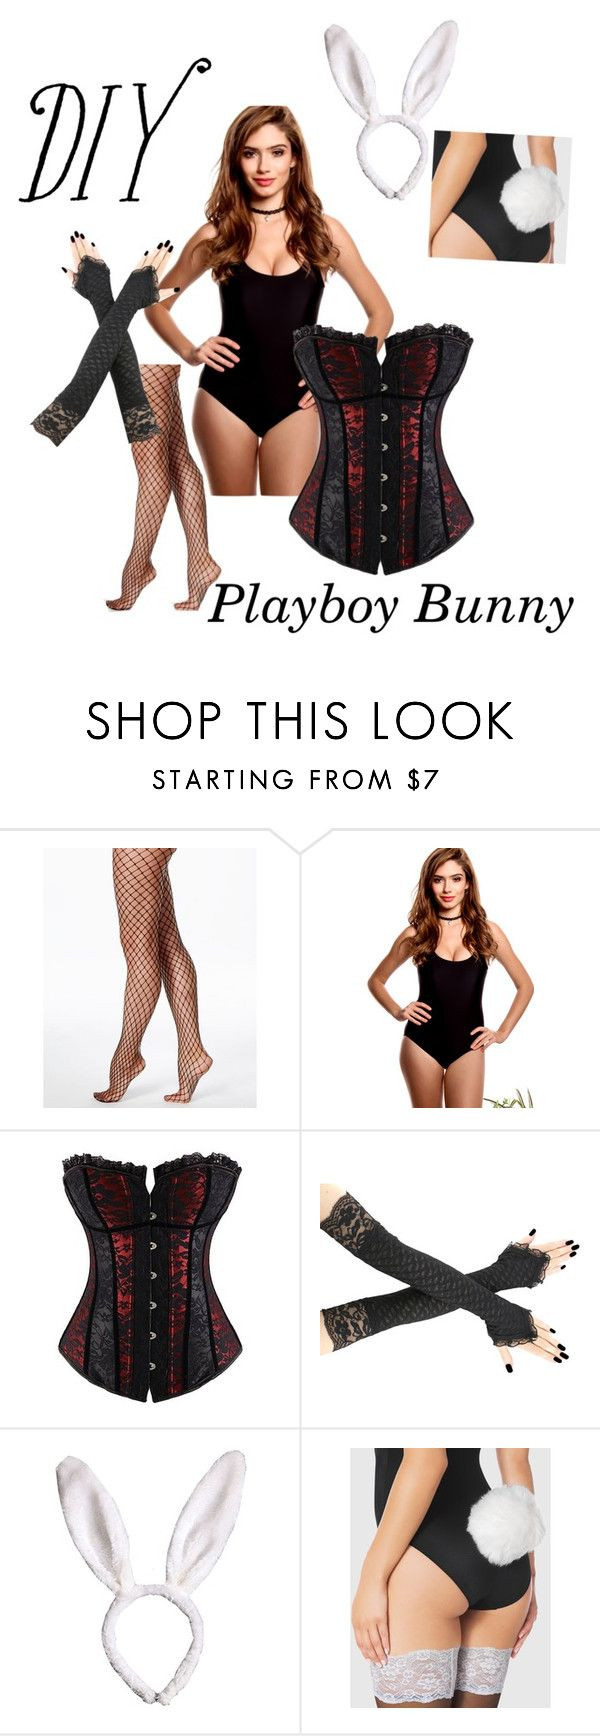 Best ideas about Playboy Bunny Costume DIY . Save or Pin 25 best ideas about Playboy Bunny Costume on Pinterest Now.